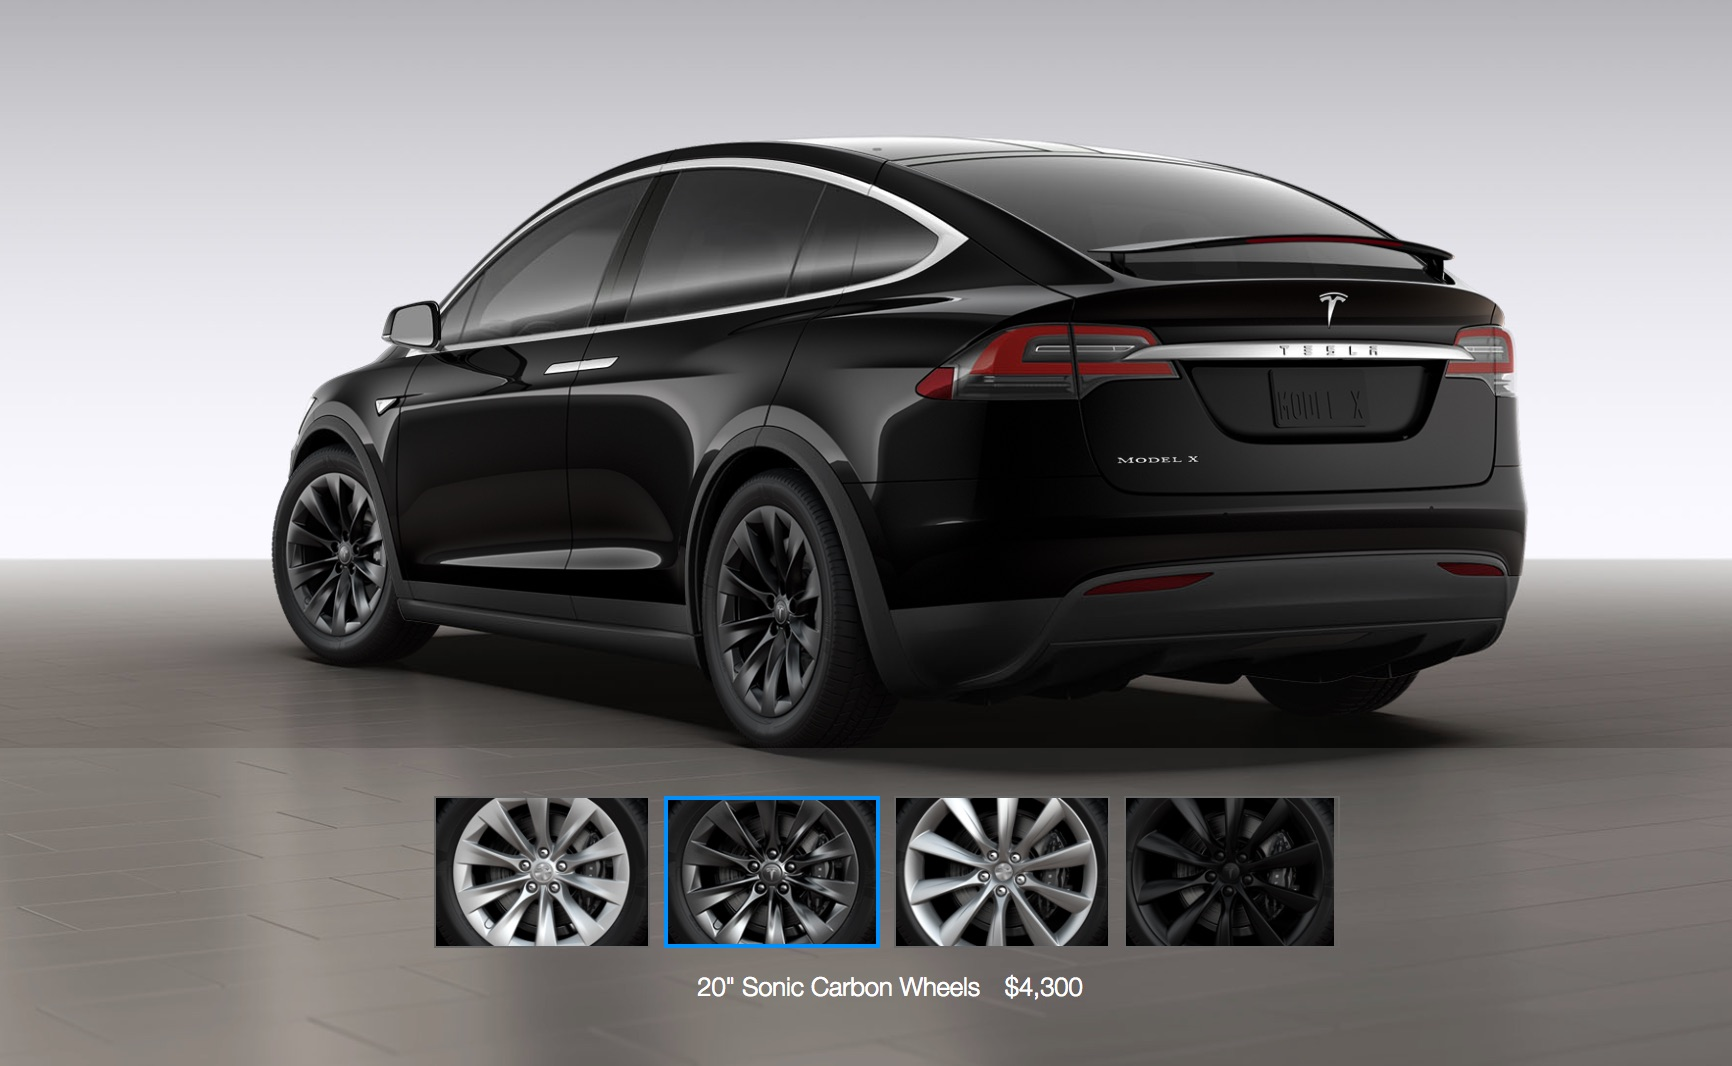 Sizewise Is The Model X Really A Reasonable Substitute For A Normal Family Friendly SUV as well Tesla Model X Gets 20 Sonic Carbon Wheel Center Console Option in addition Q7 3 also Tesla Model 3 Vs Model S Specifications Handout as well Interior. on tesla model 3 interior dimensions